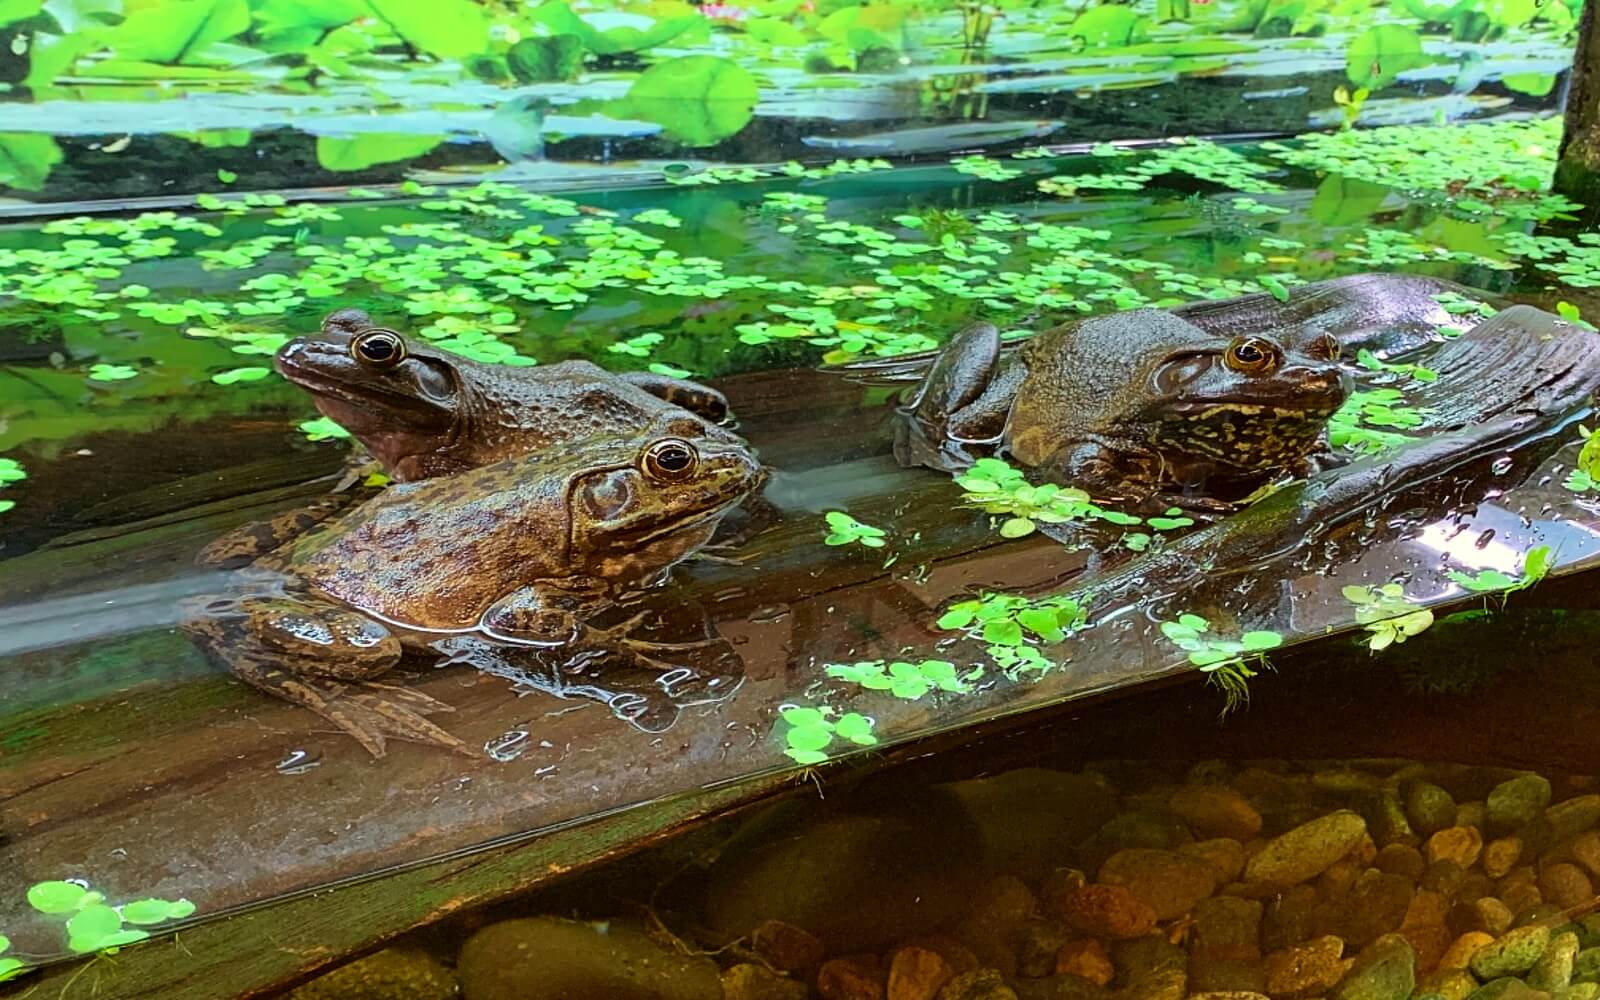 The Frogs Forever Gallery at the Vancouver Aquarium